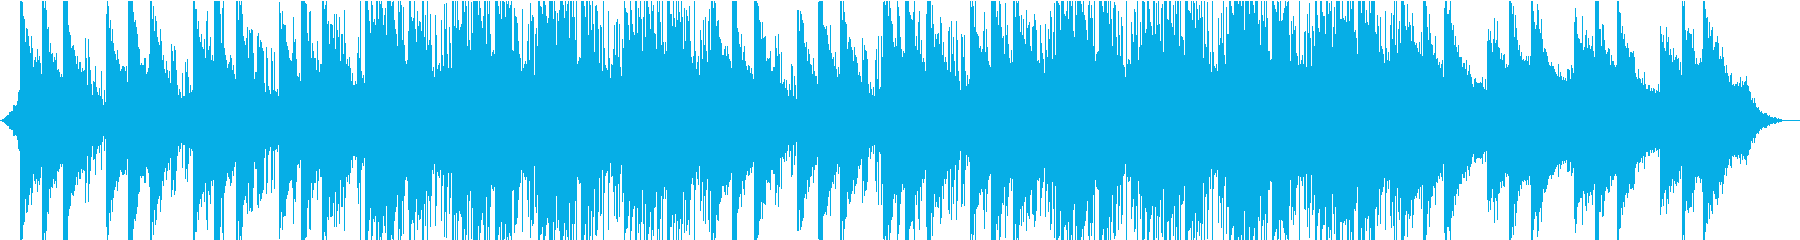 Color the image! Beautiful guitar and piano's reproduced waveform